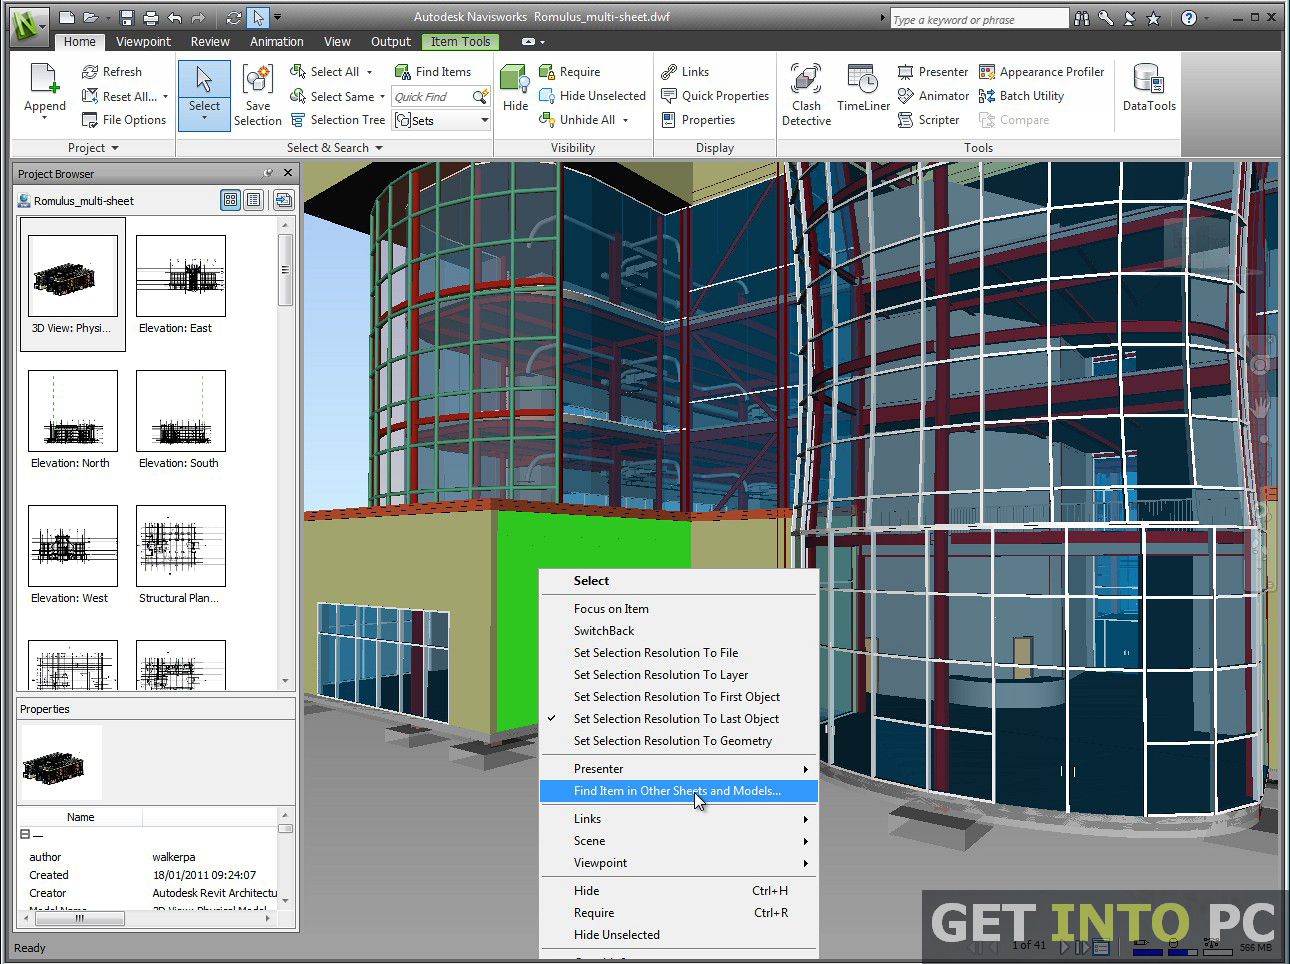 Free Autodesk NavisWorks Manage 2014 Download